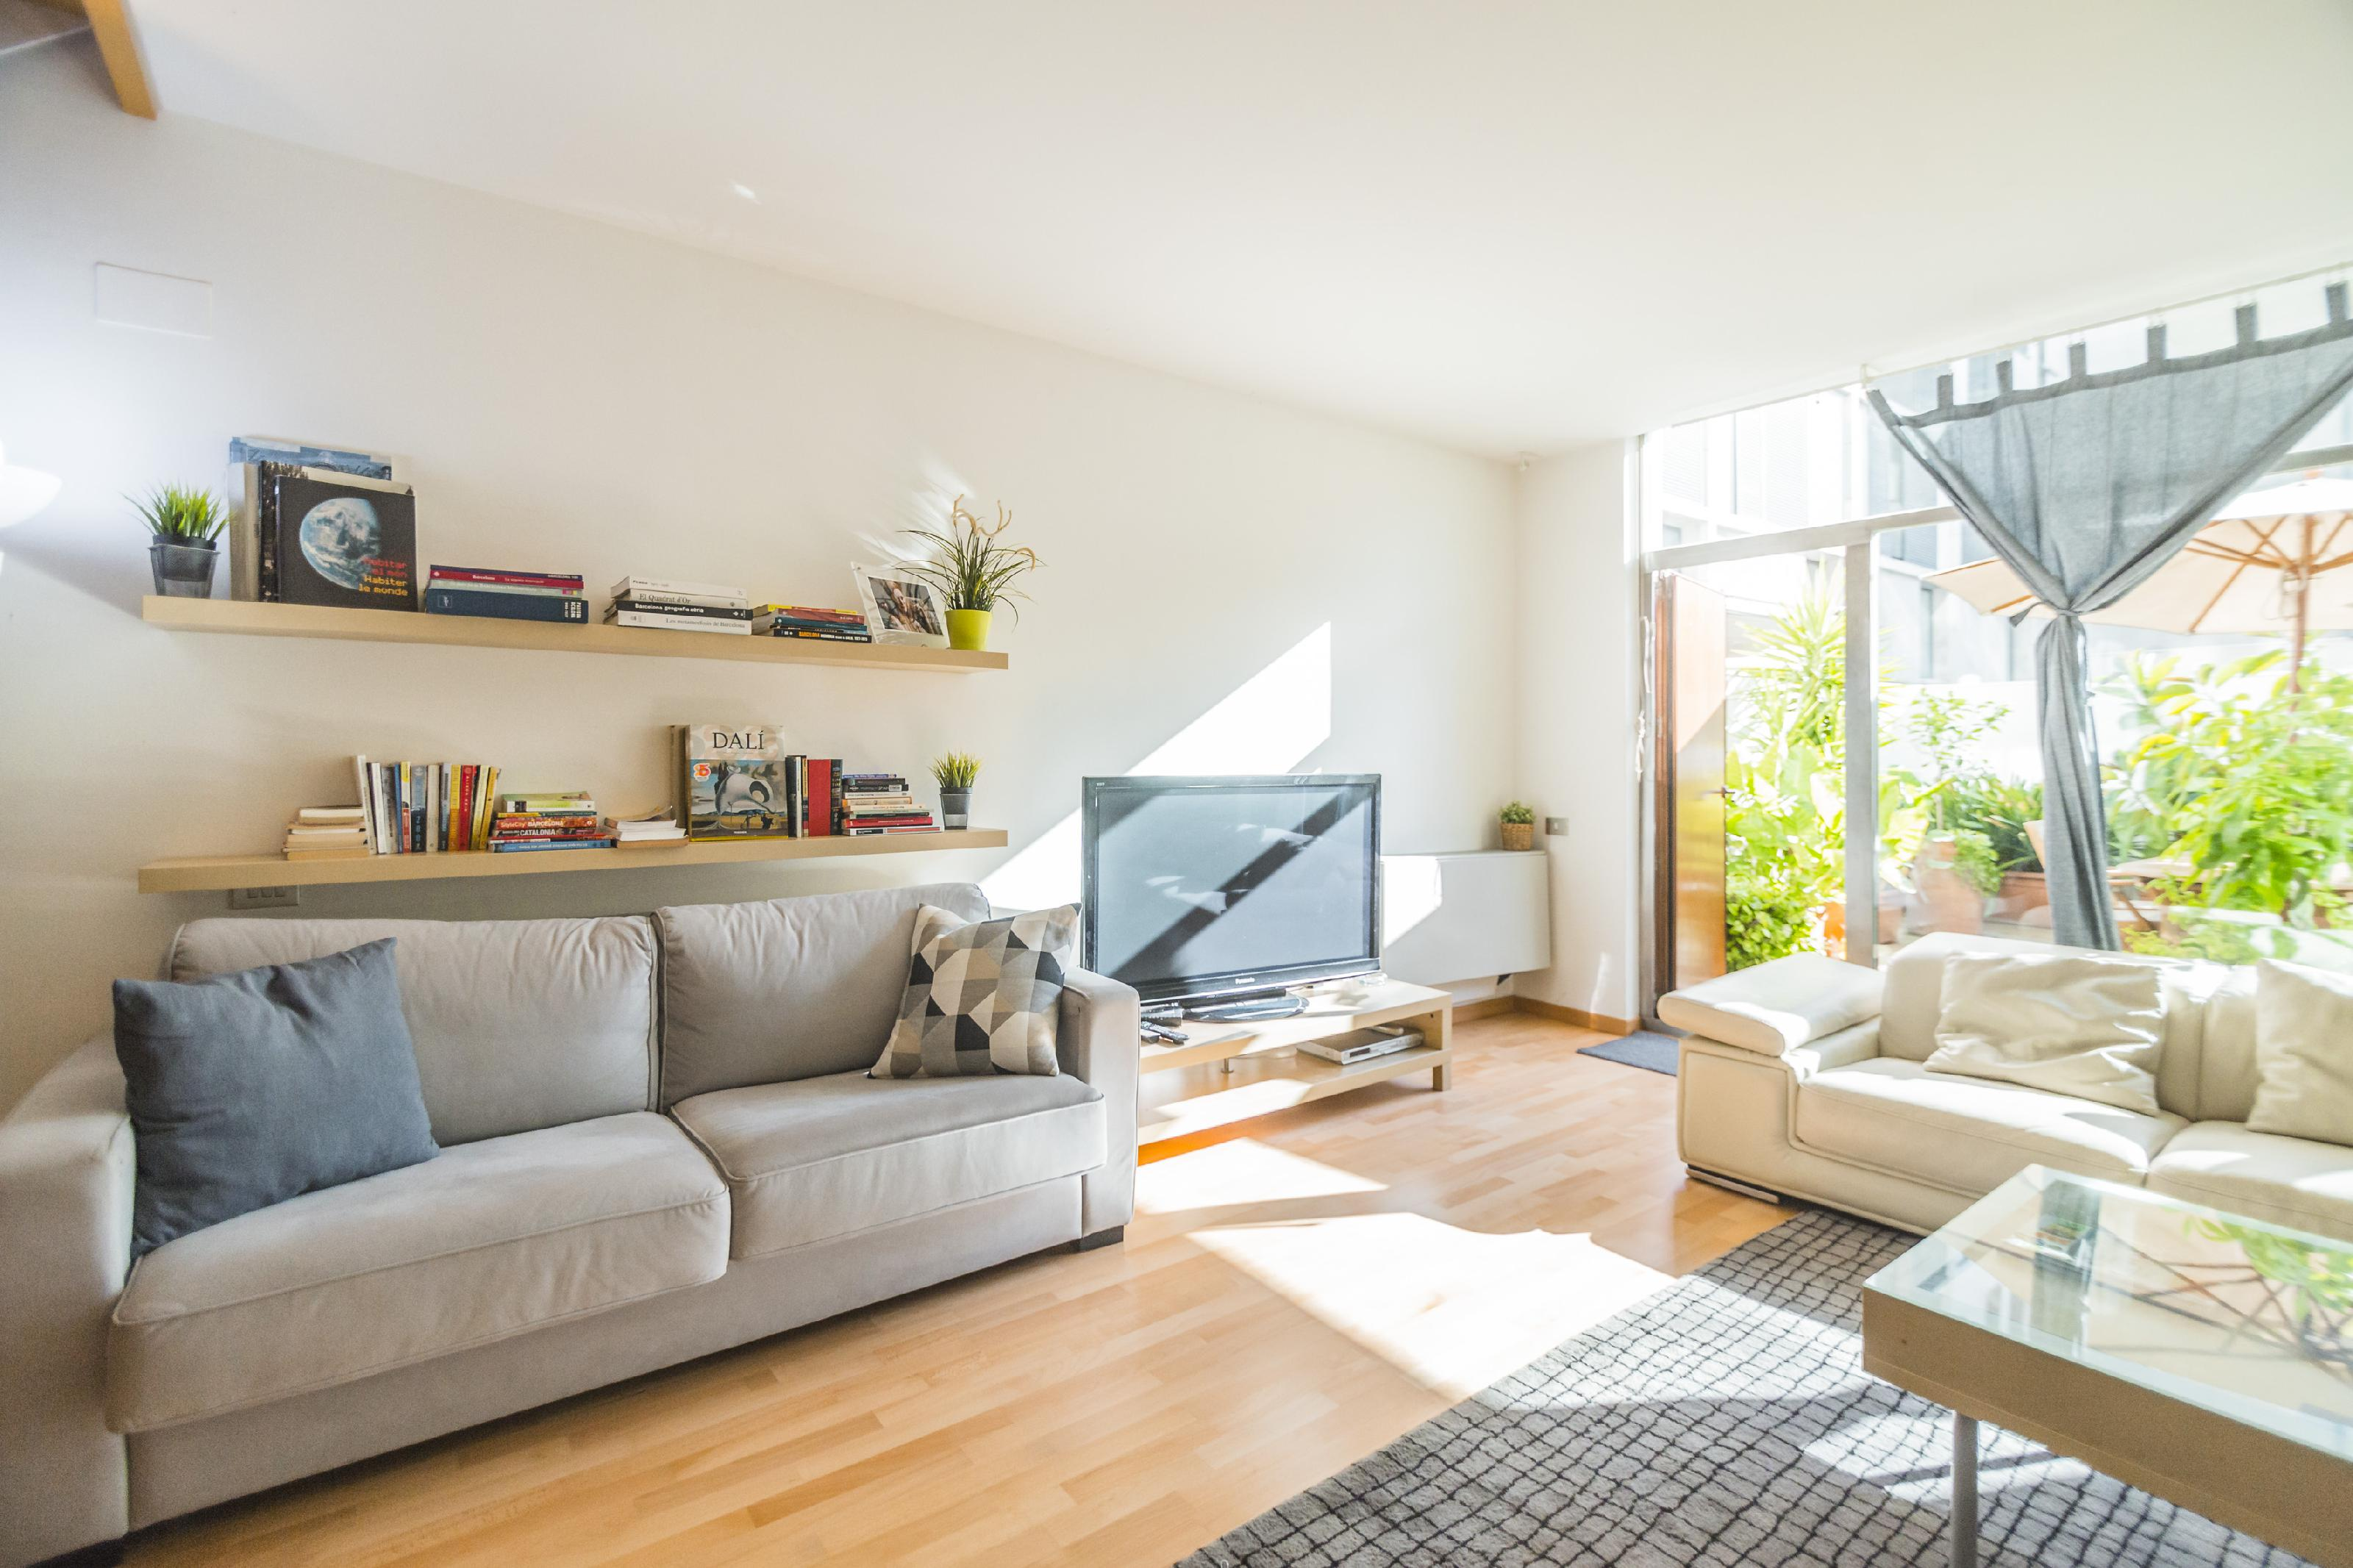 109651 Apartment for sale in Eixample, Dreta Eixample 11